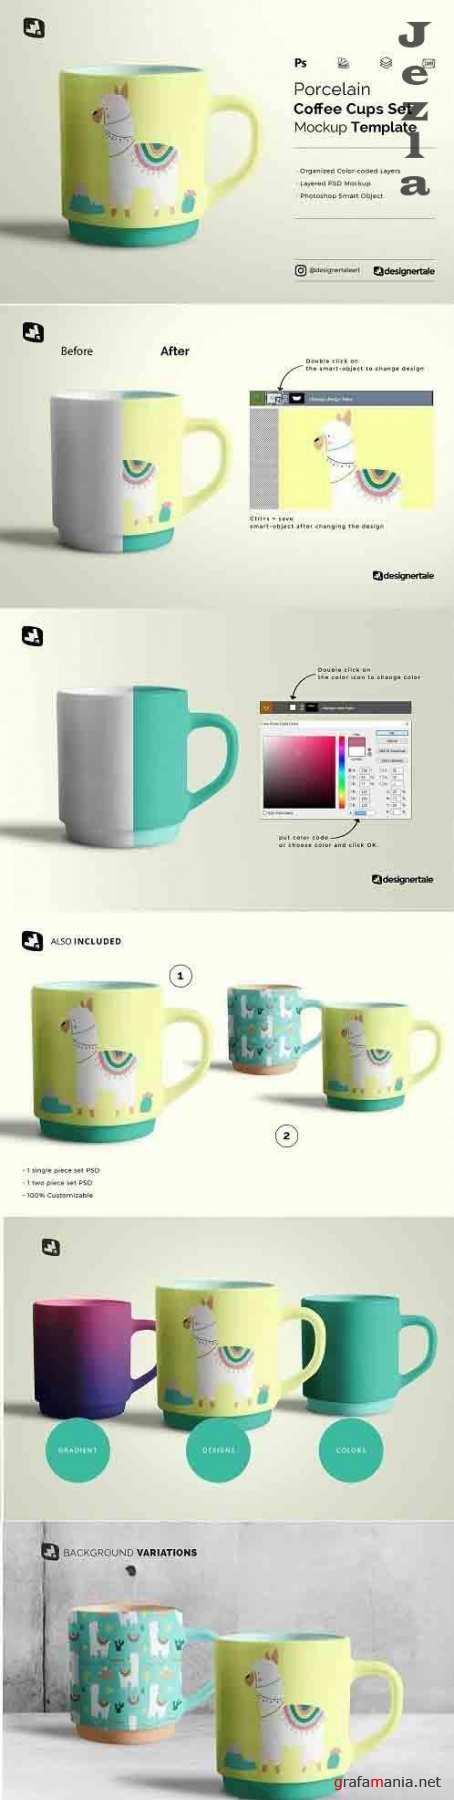 CreativeMarket - Porcelain Coffee Cups Set Mockup 5188654